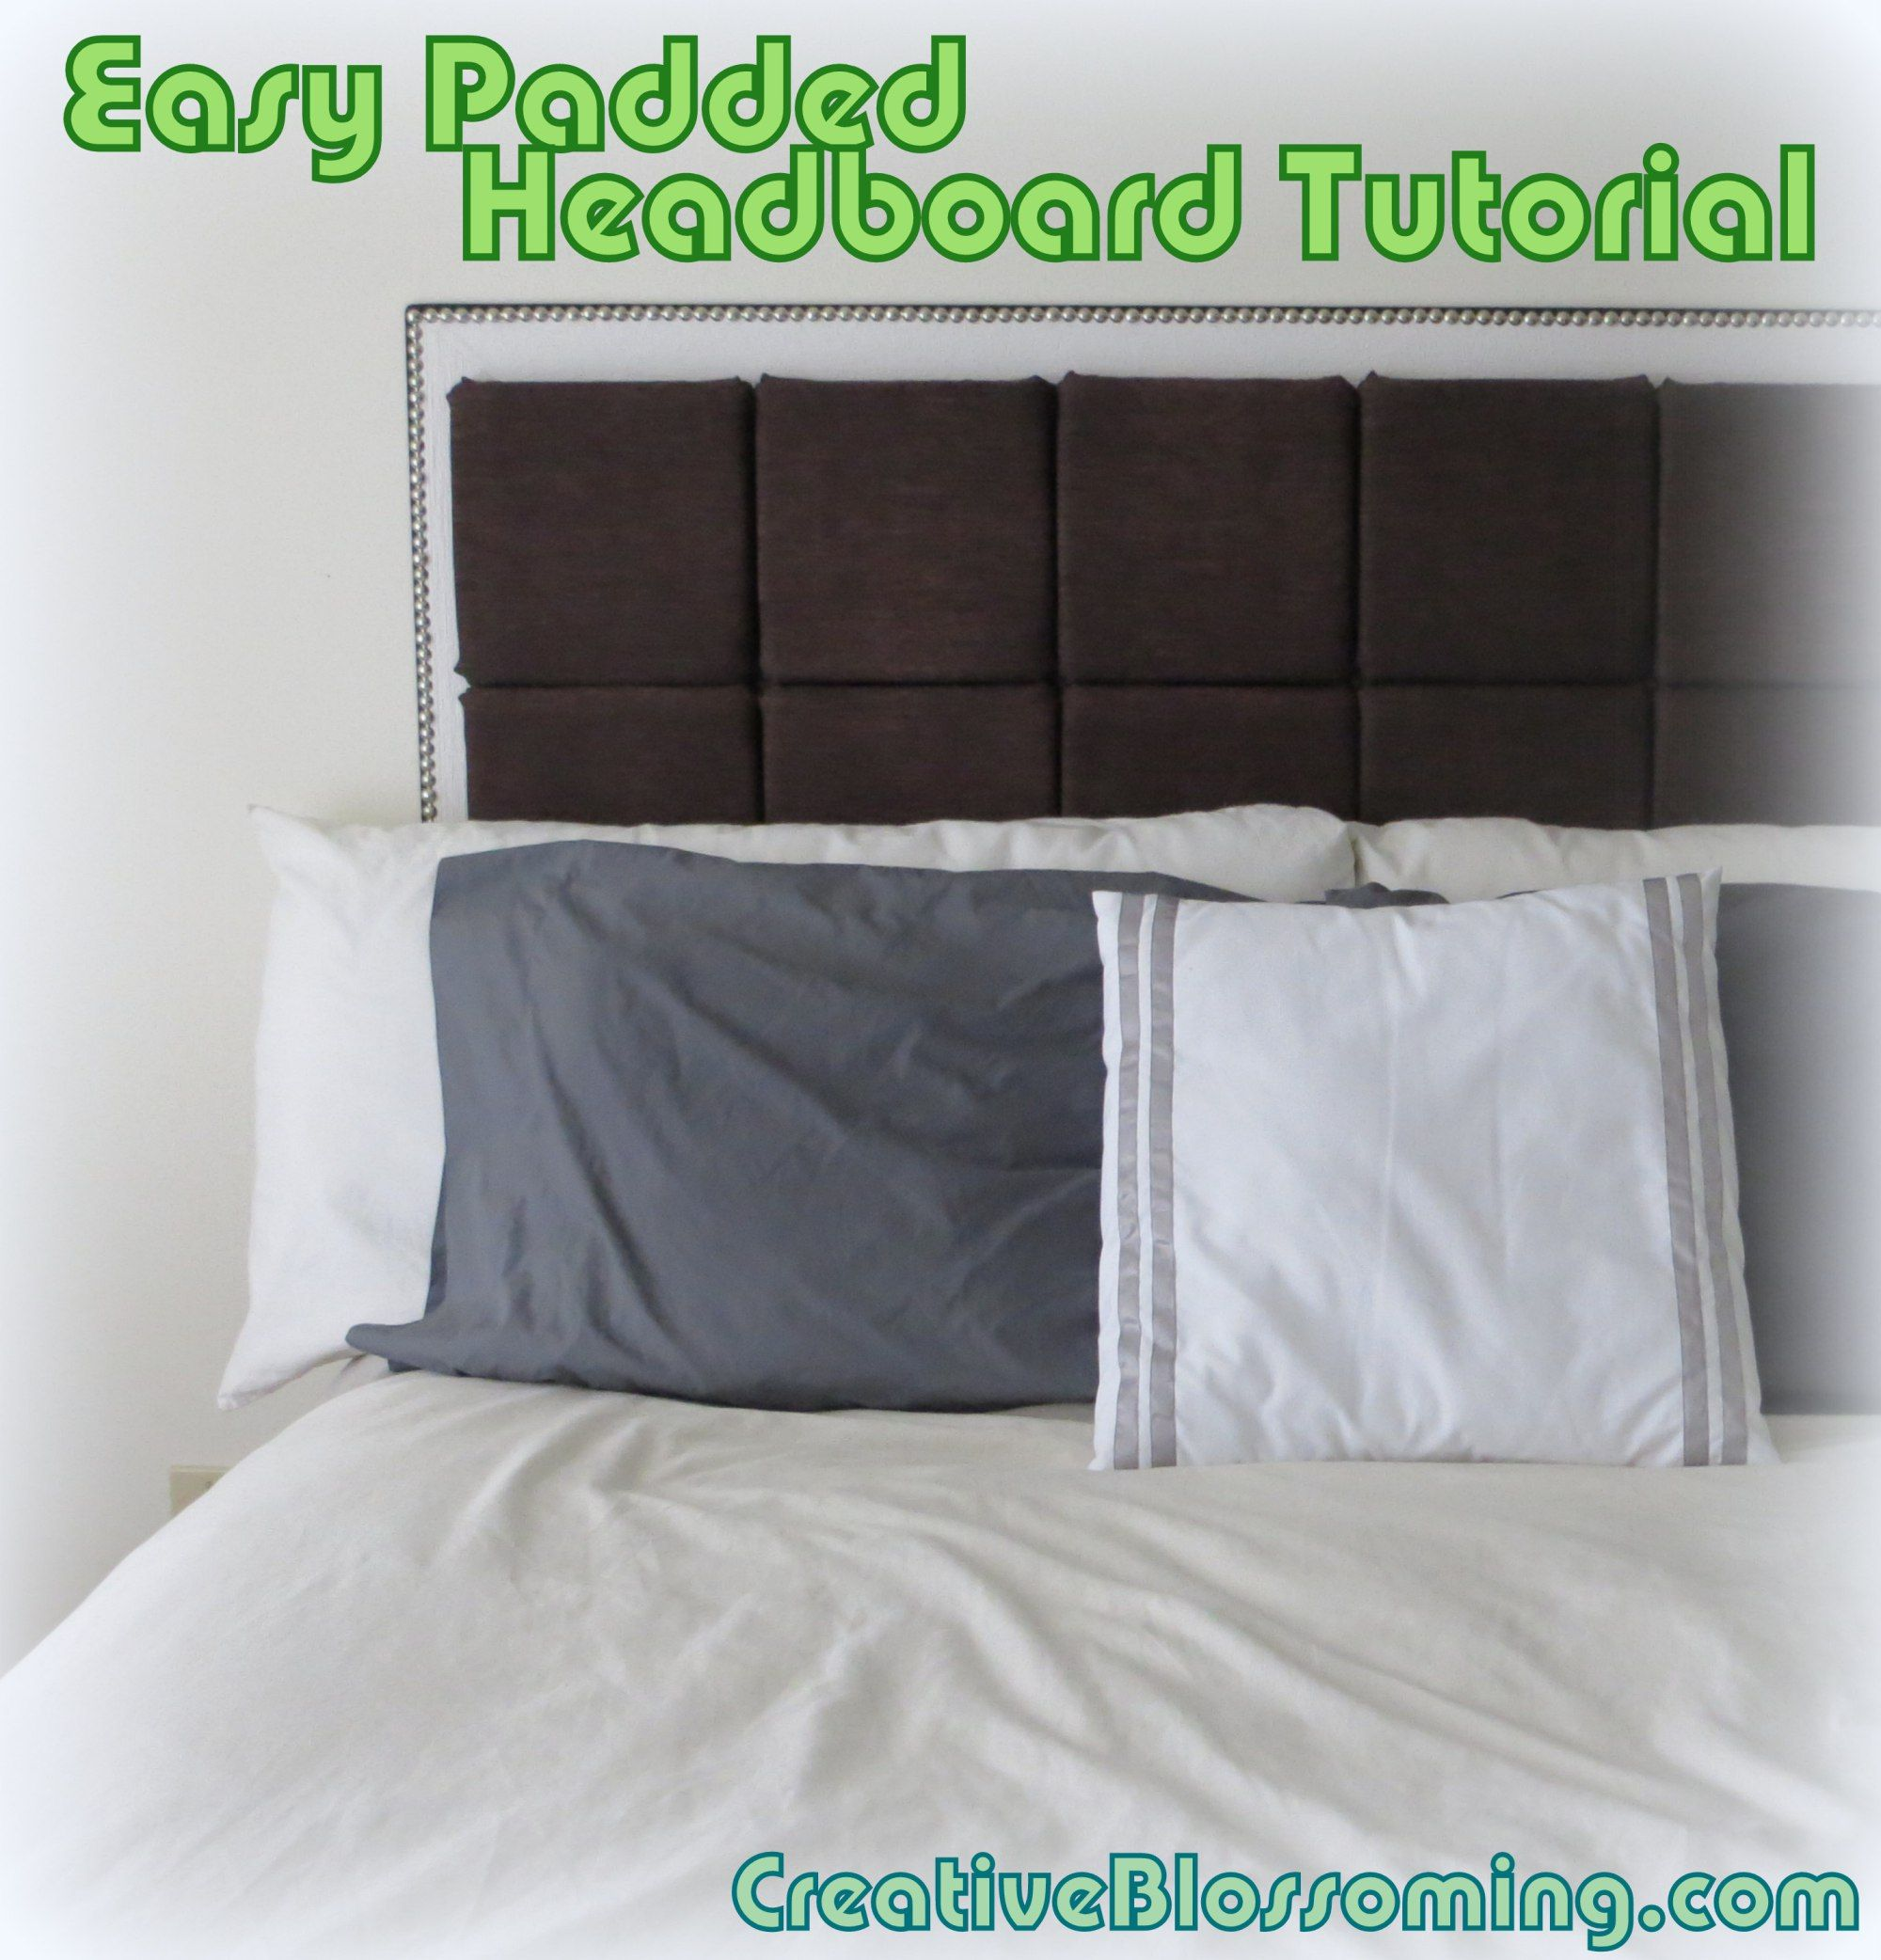 Diy Easy Padded Floating Headboard Tutorial With Foamboard Plywood Fabric Foam Padding Upholstery Floating Headboard Headboard Diy Easy Headboard Tutorial